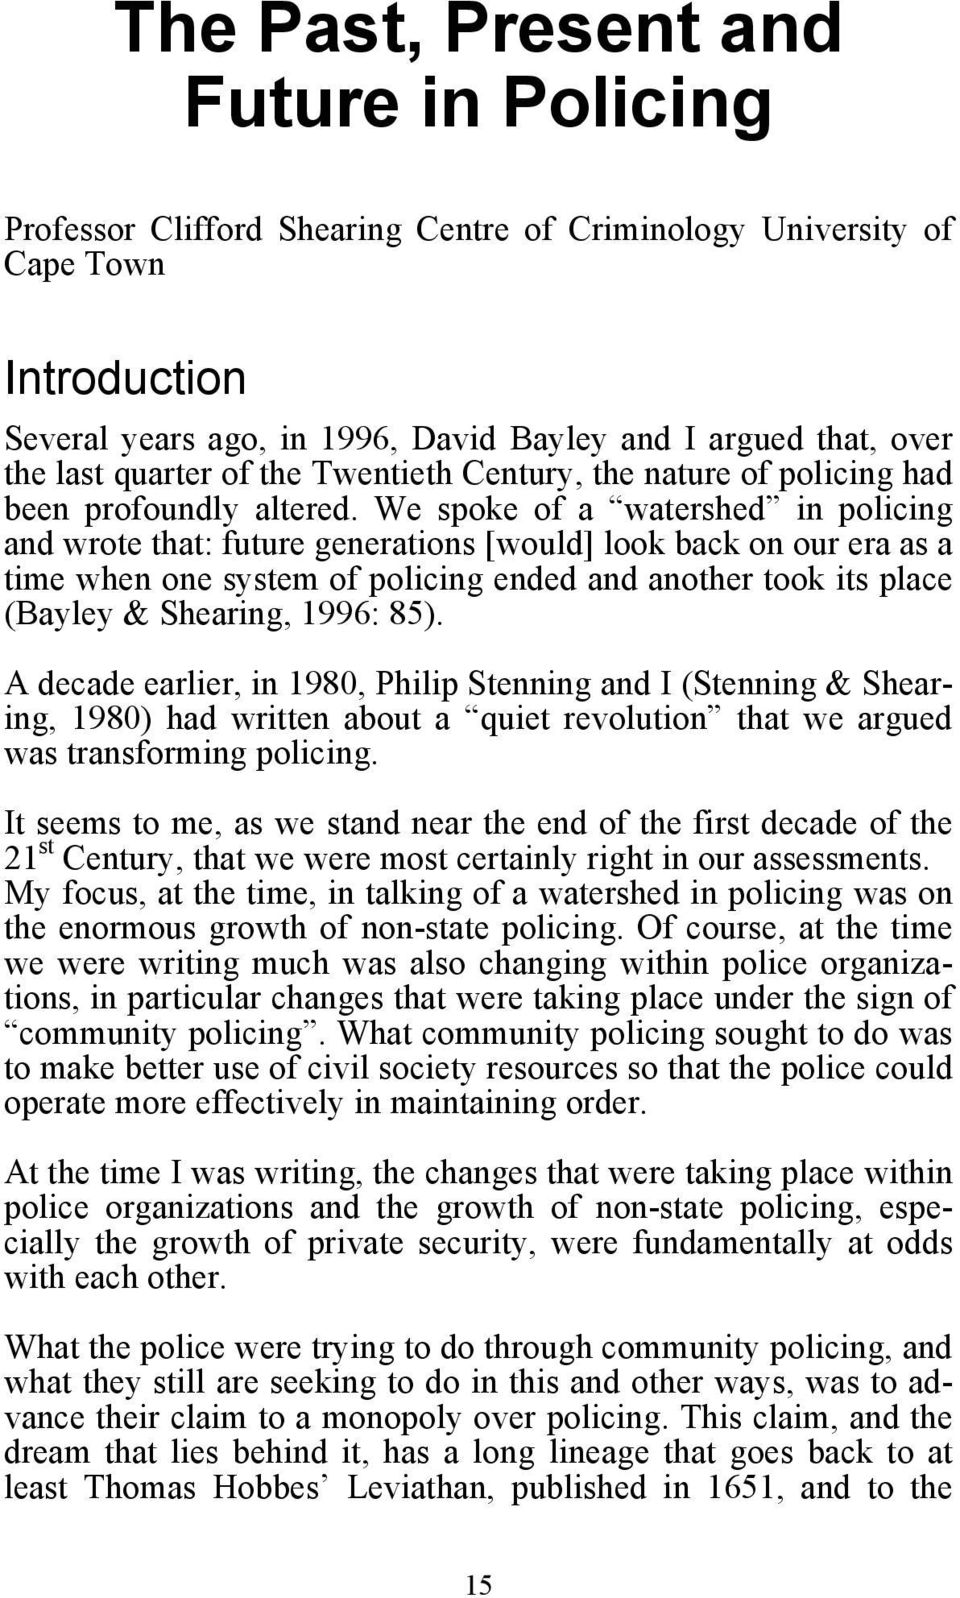 We spoke of a watershed in policing and wrote that: future generations [would] look back on our era as a time when one system of policing ended and another took its place (Bayley & Shearing, 1996: